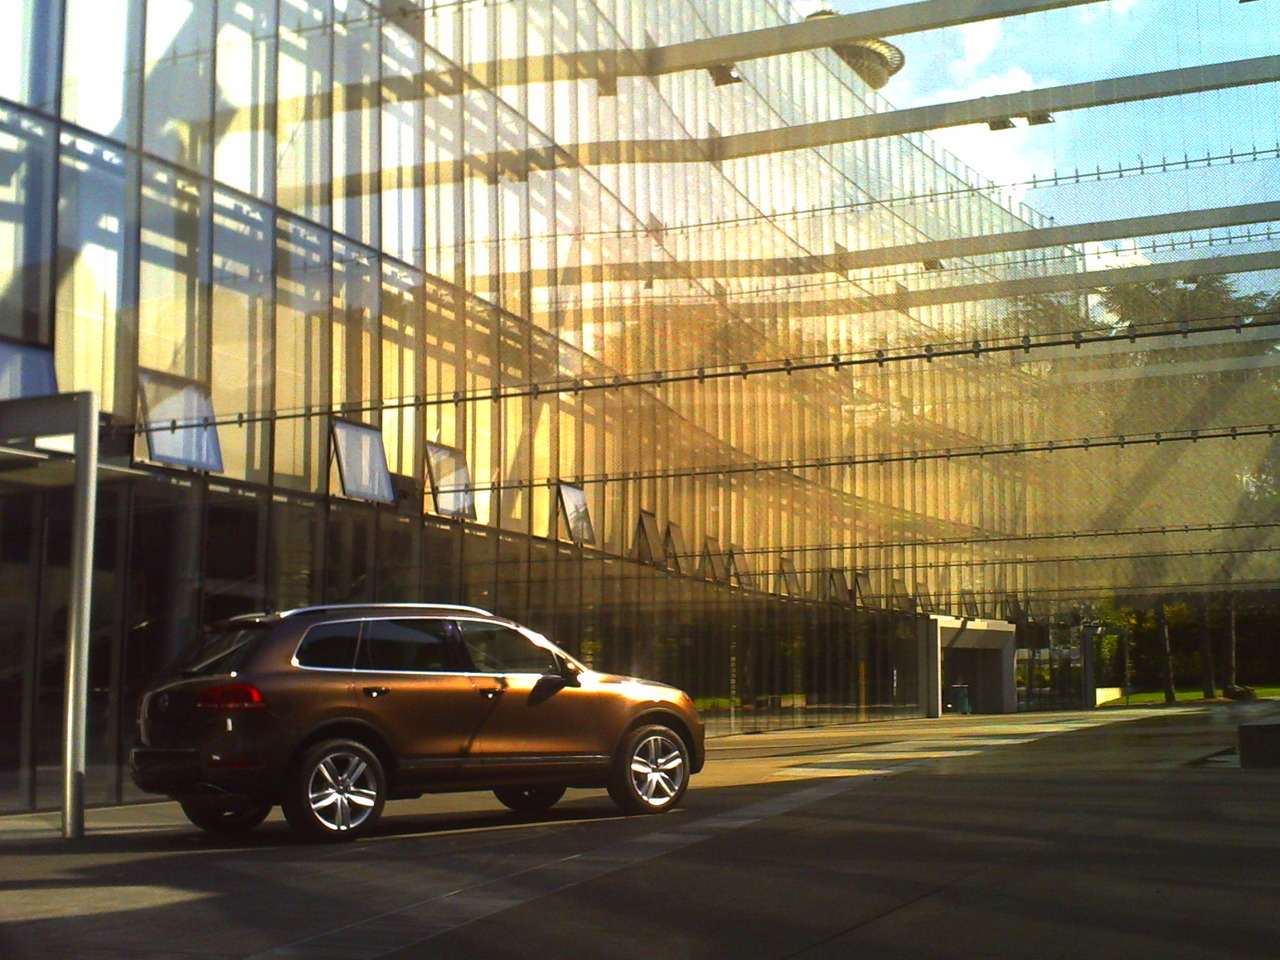 The all-new redesigned  2011 Volkswagen Touareg2  at  The Seattle Center .